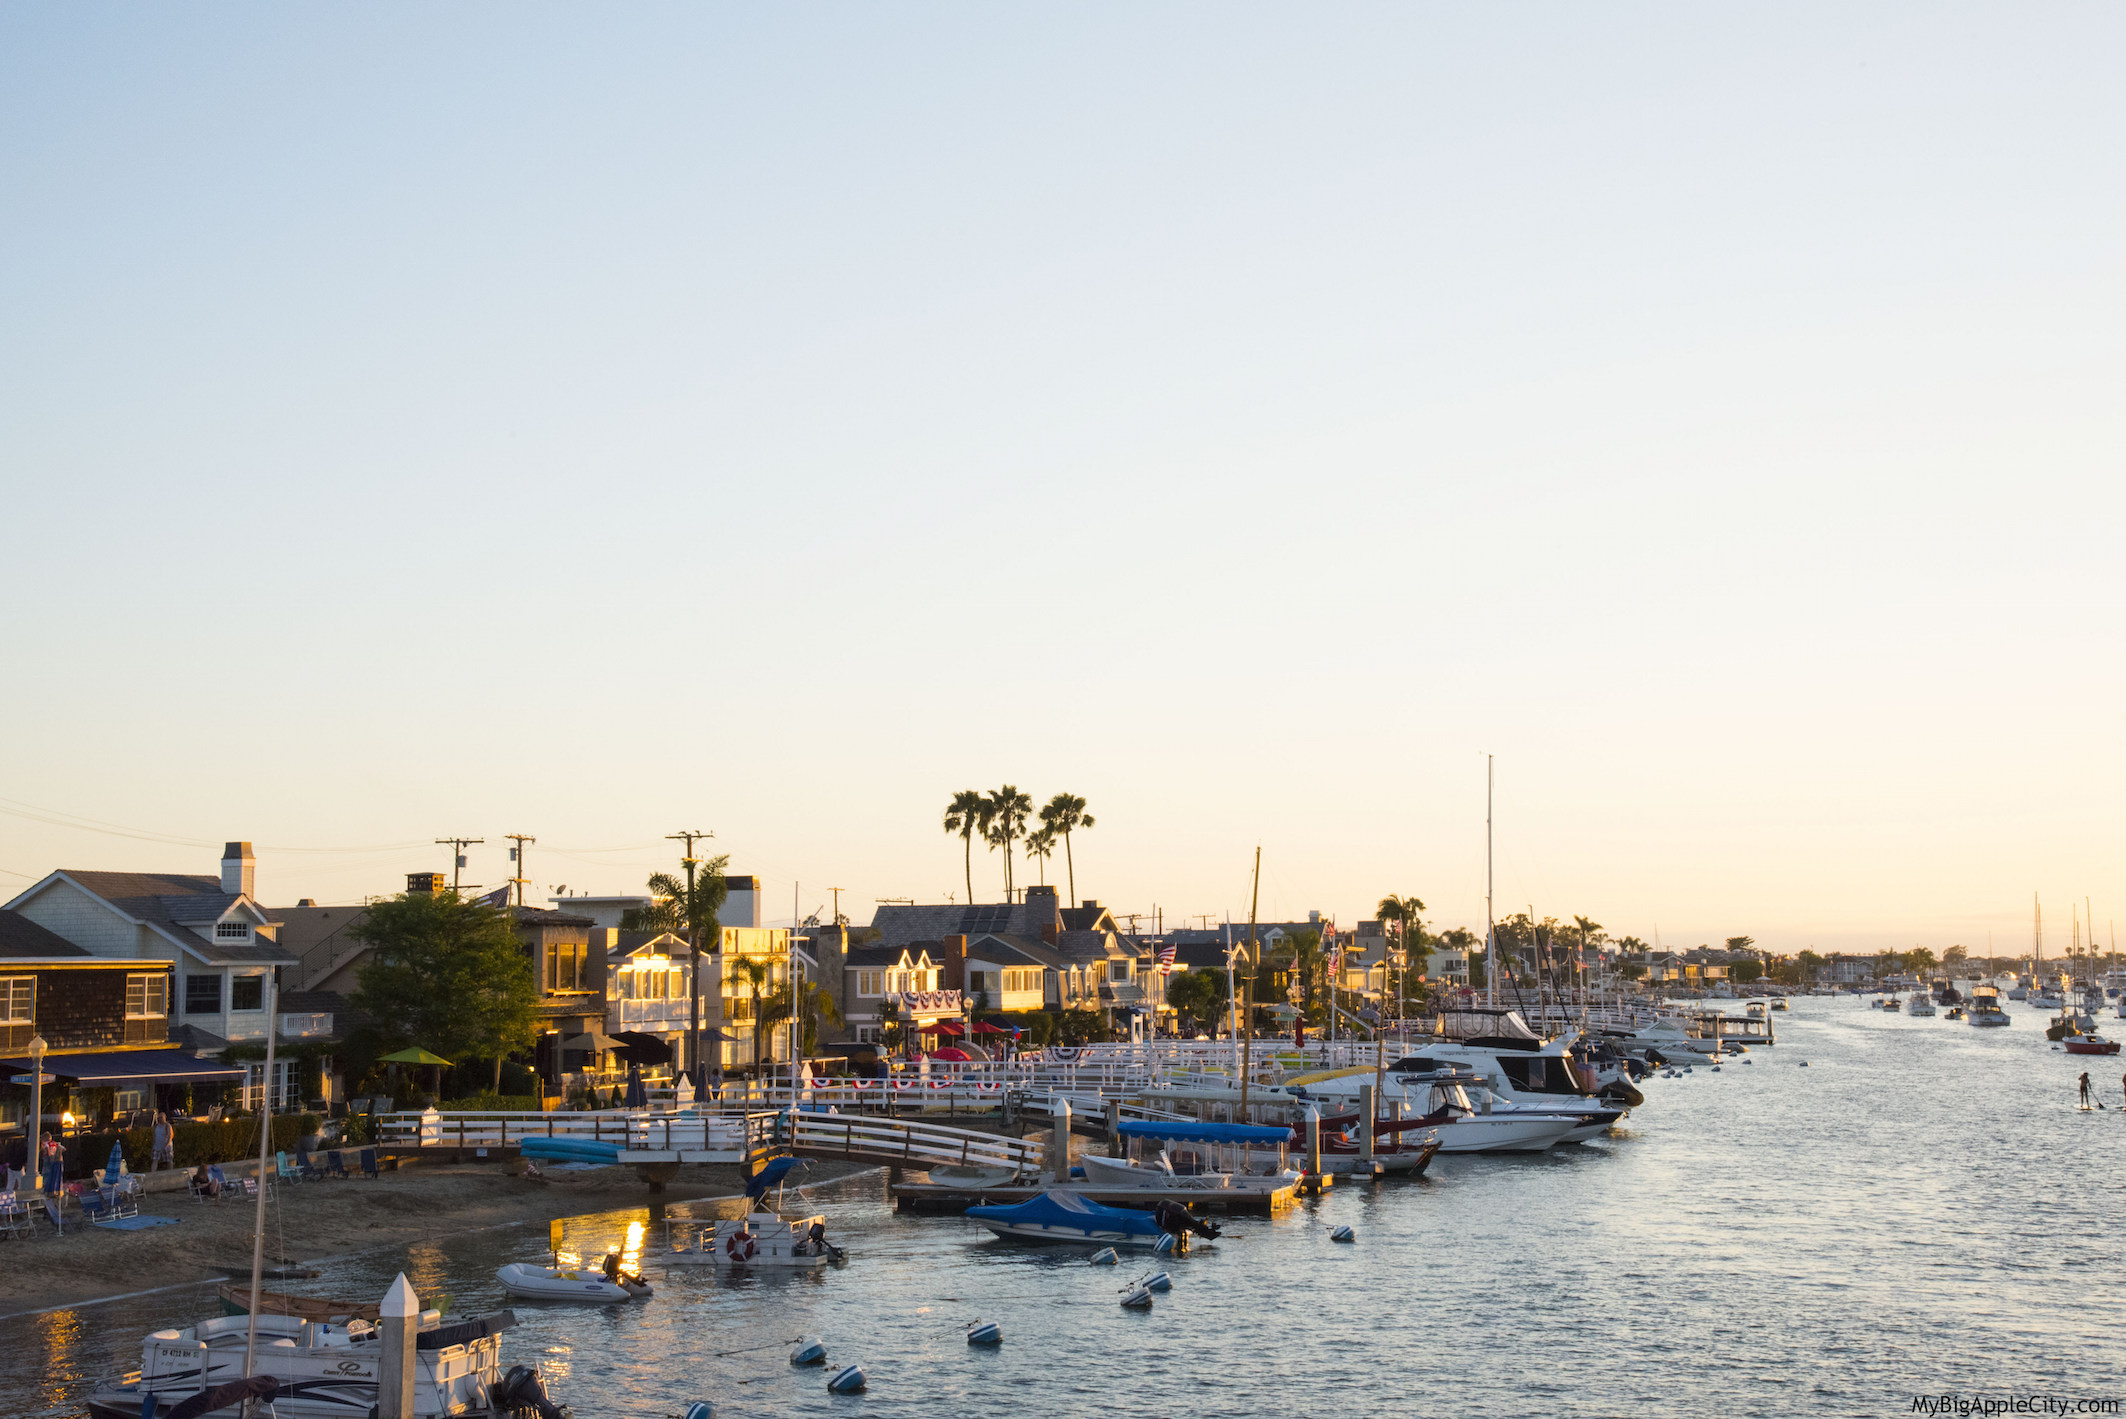 Sunset-Balboa-Island-travel-blog-mybigapplecity